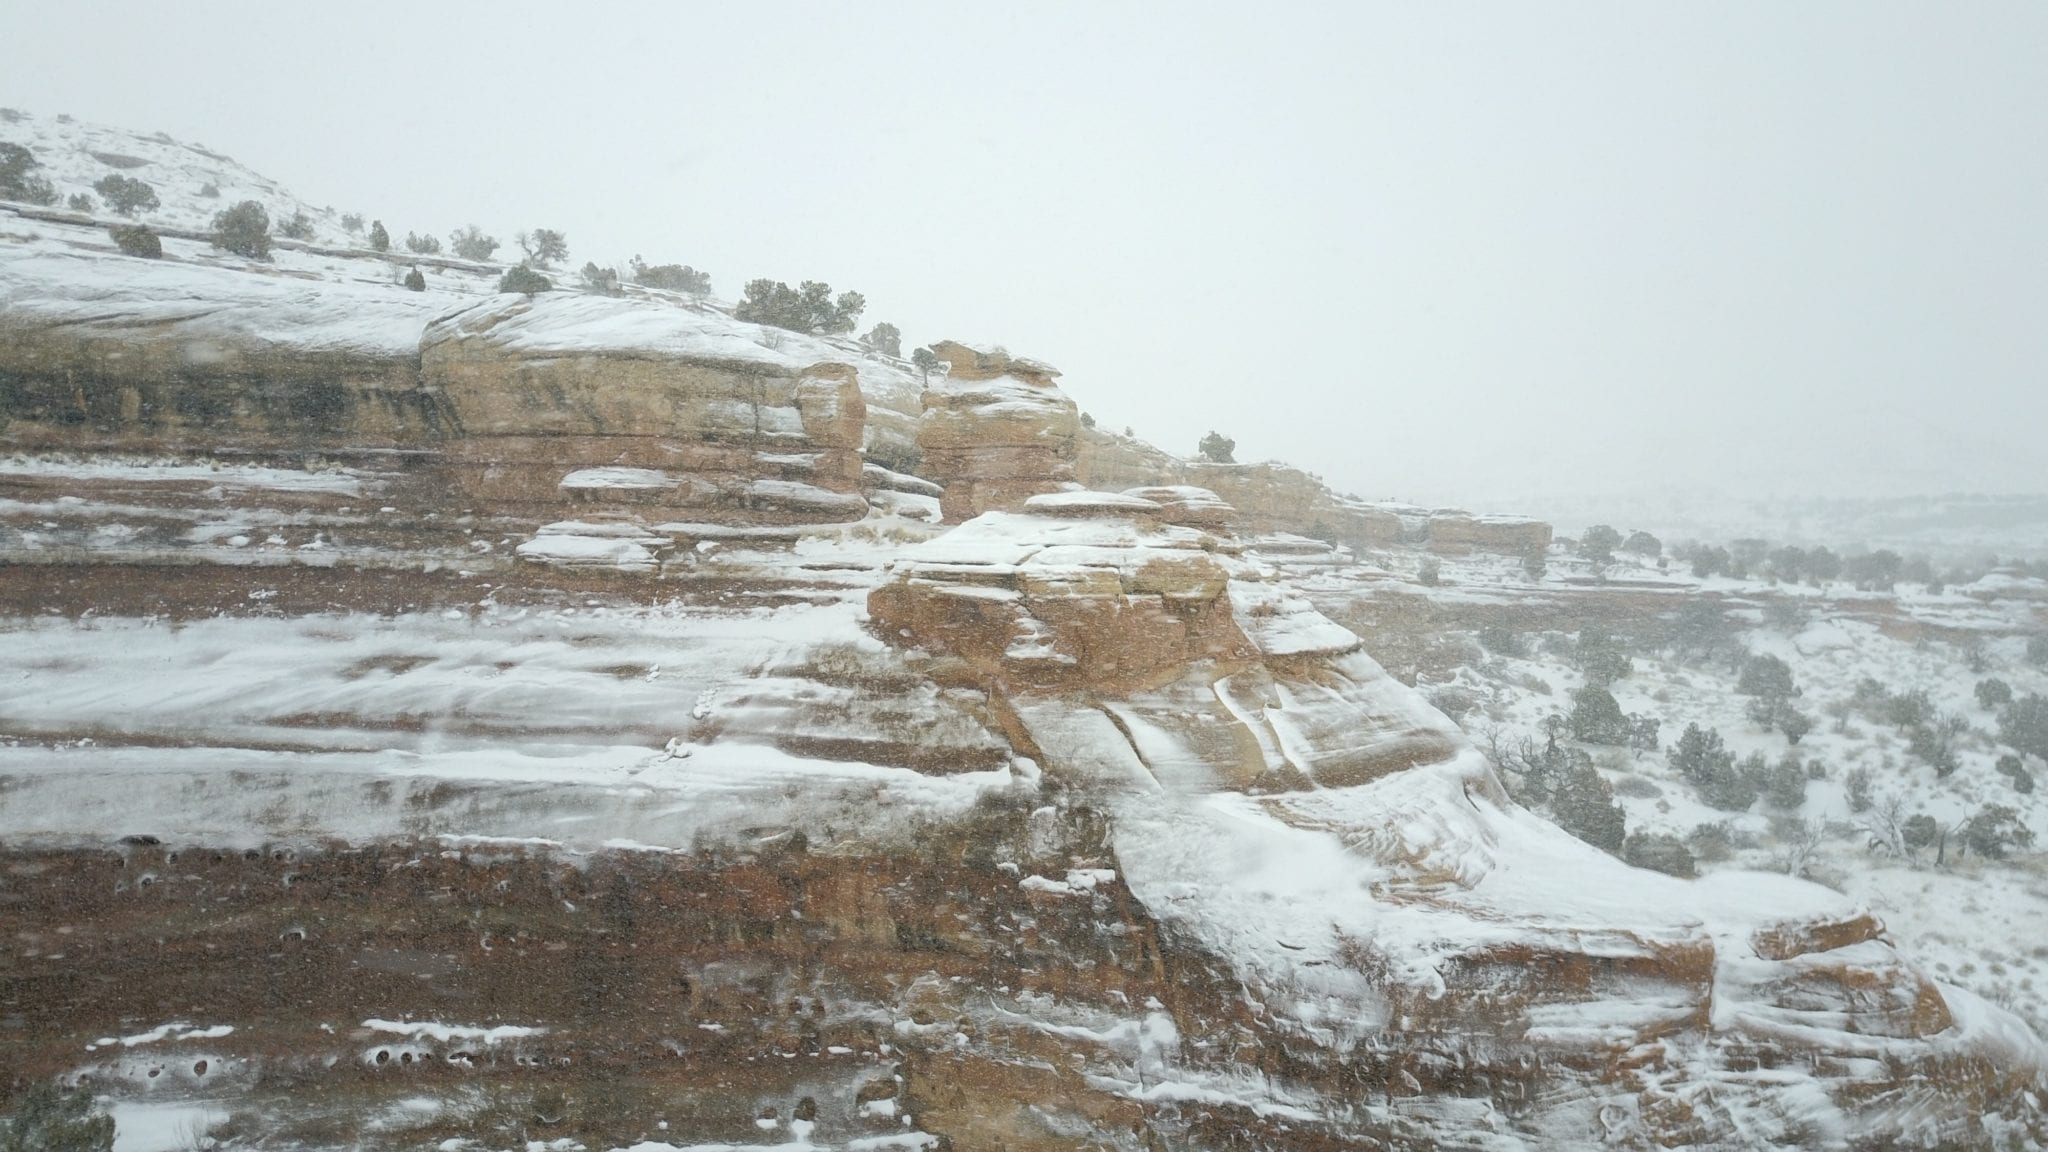 Out of the snowstorm emerges the red rocks of Devil's Canyon.